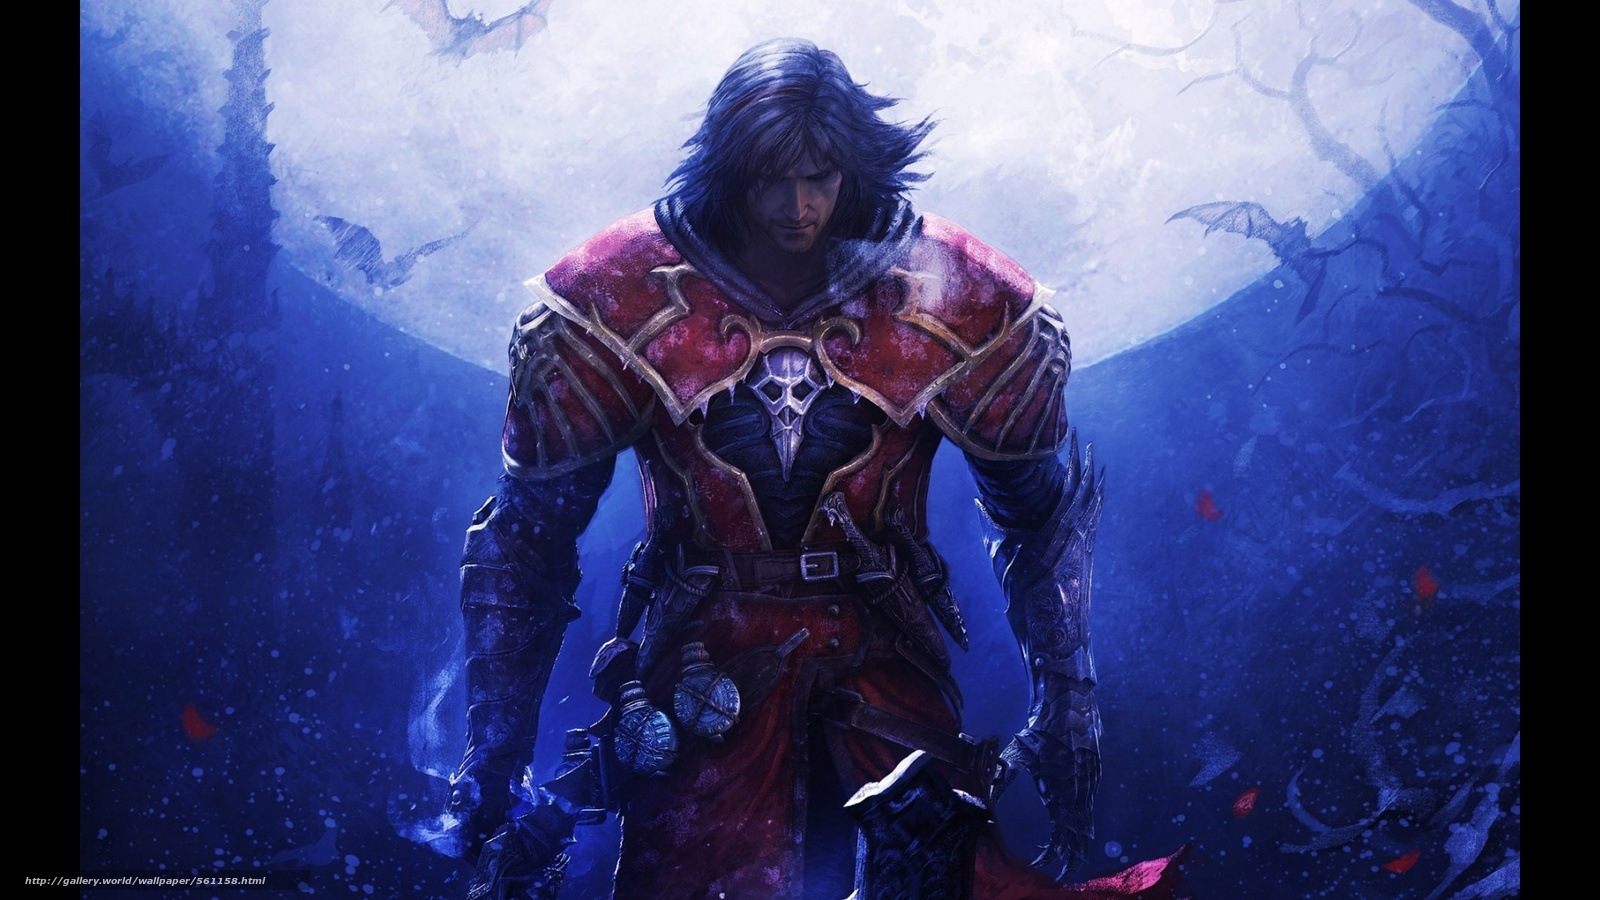 Download Wallpaper Castlevania Game Slasher Prince Of